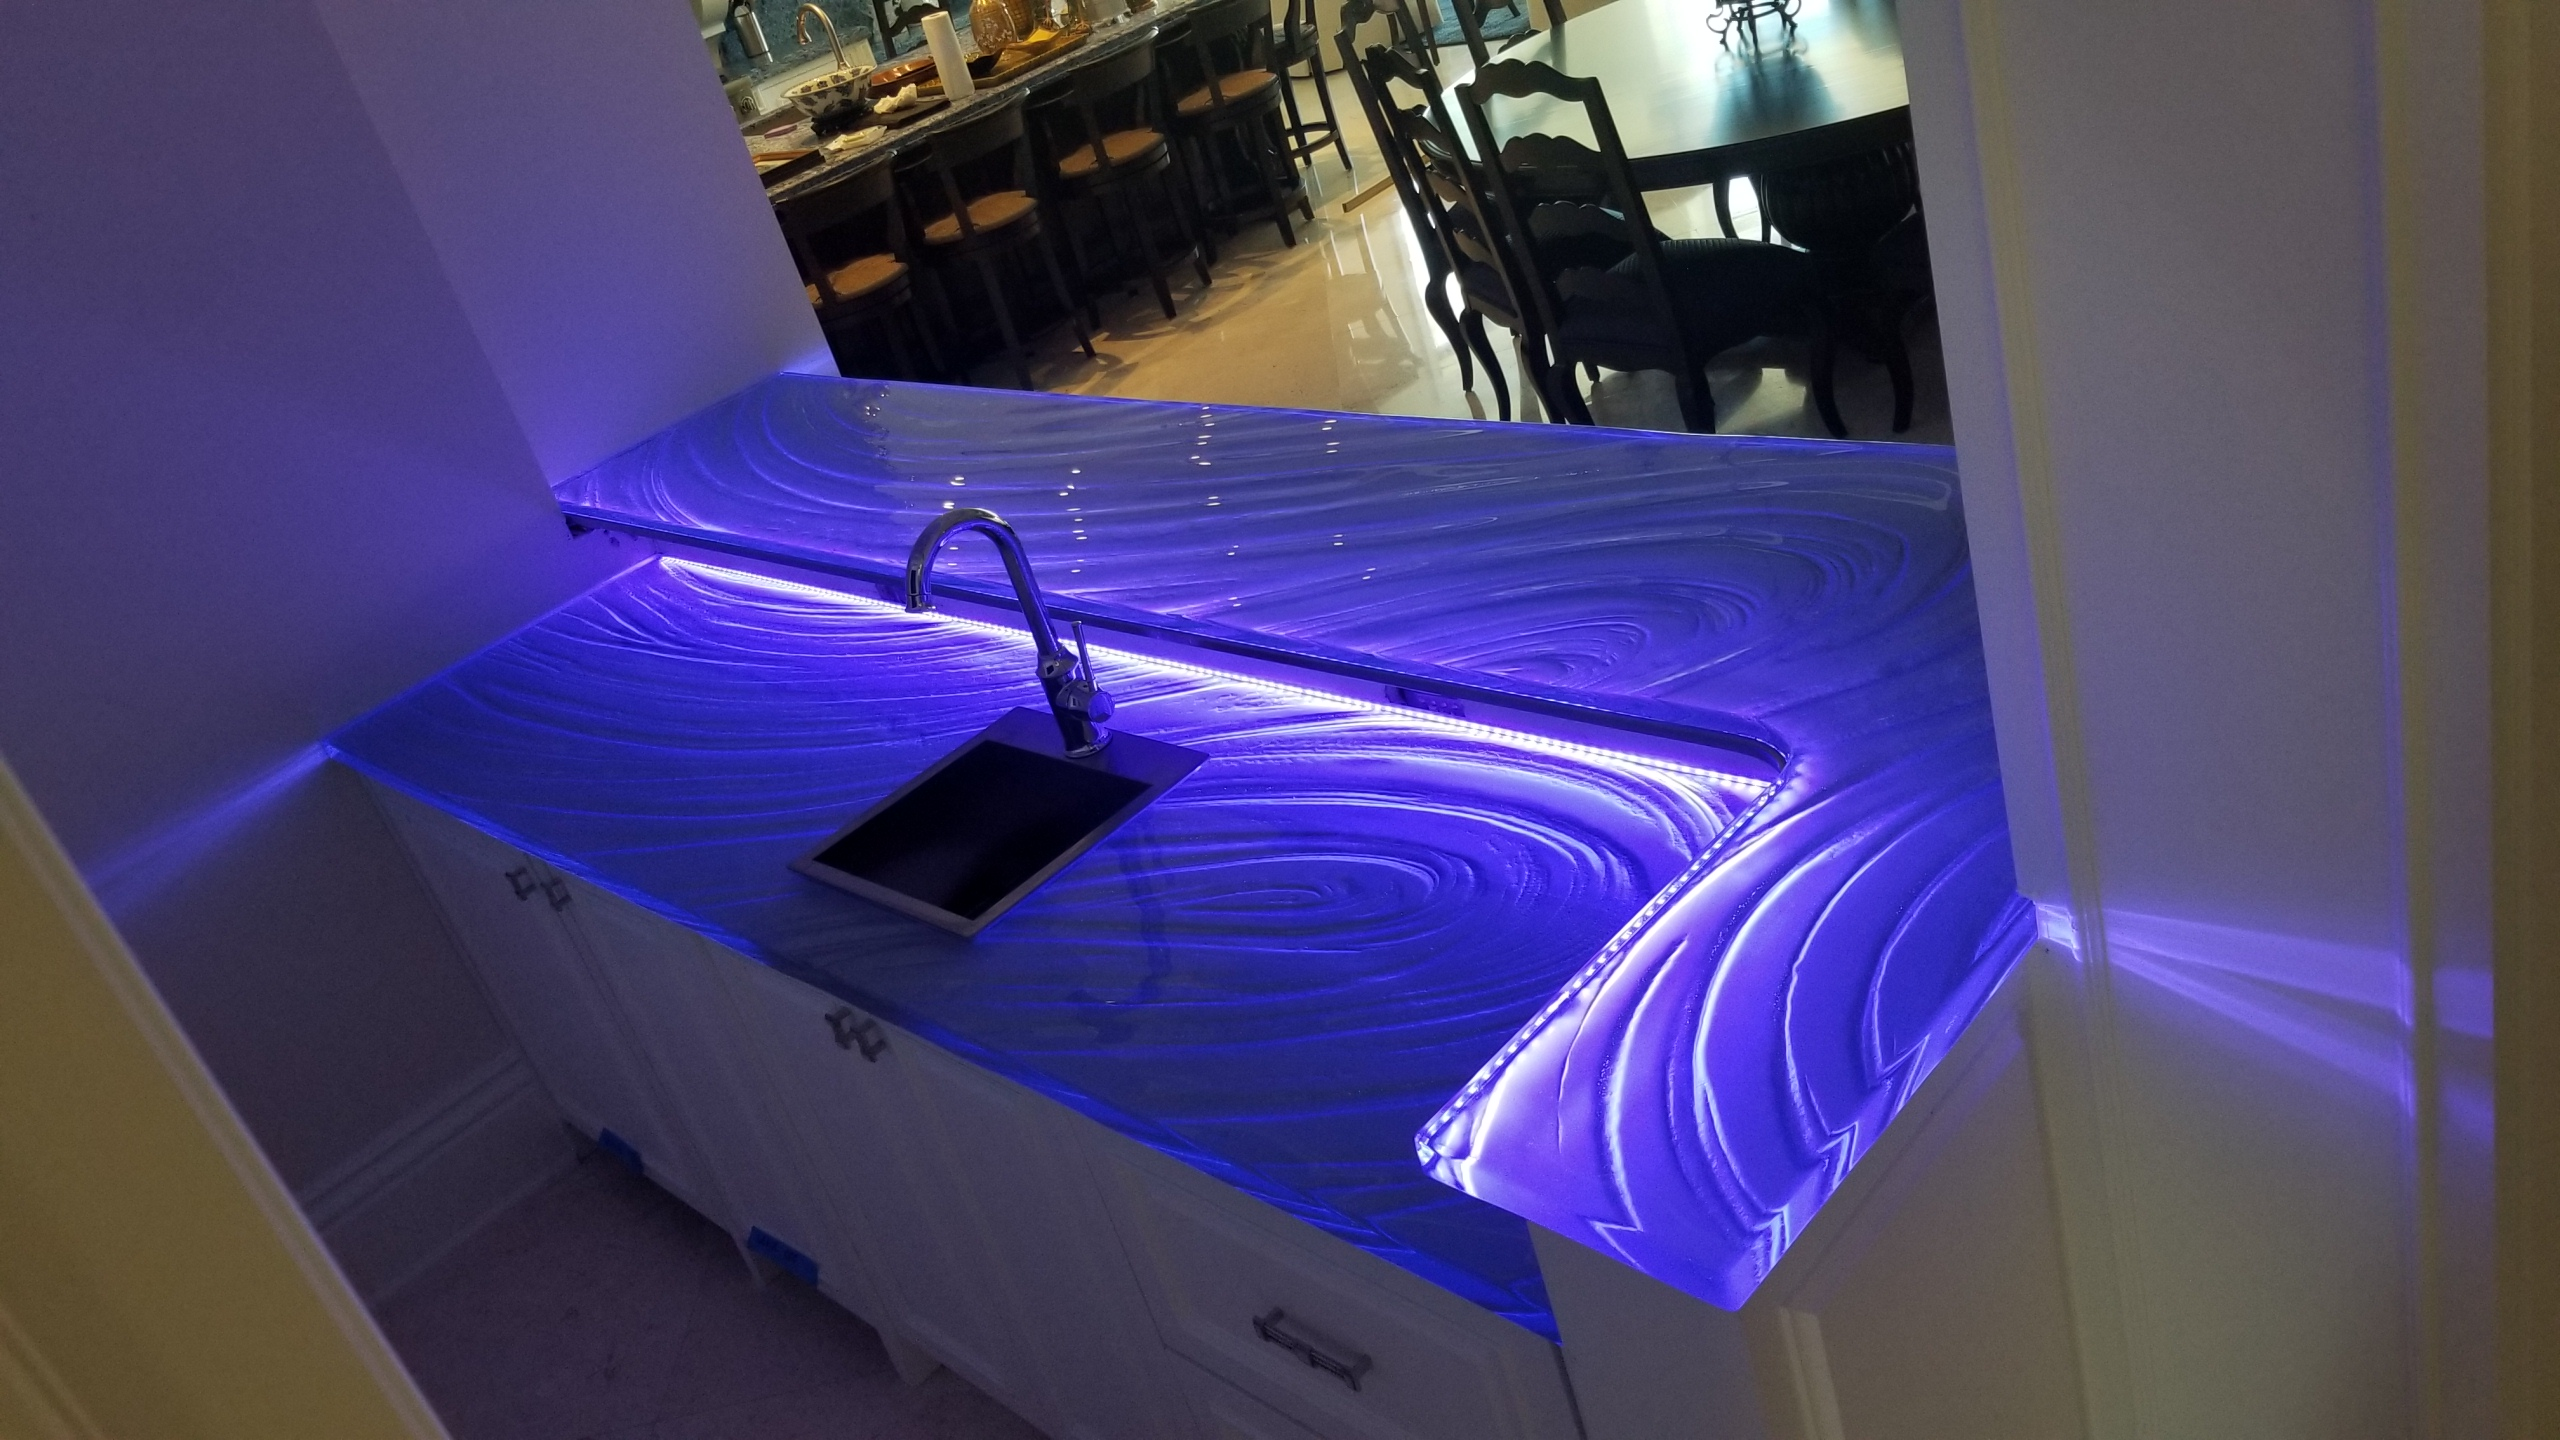 Lighting A Gl Countertop With Led Lights